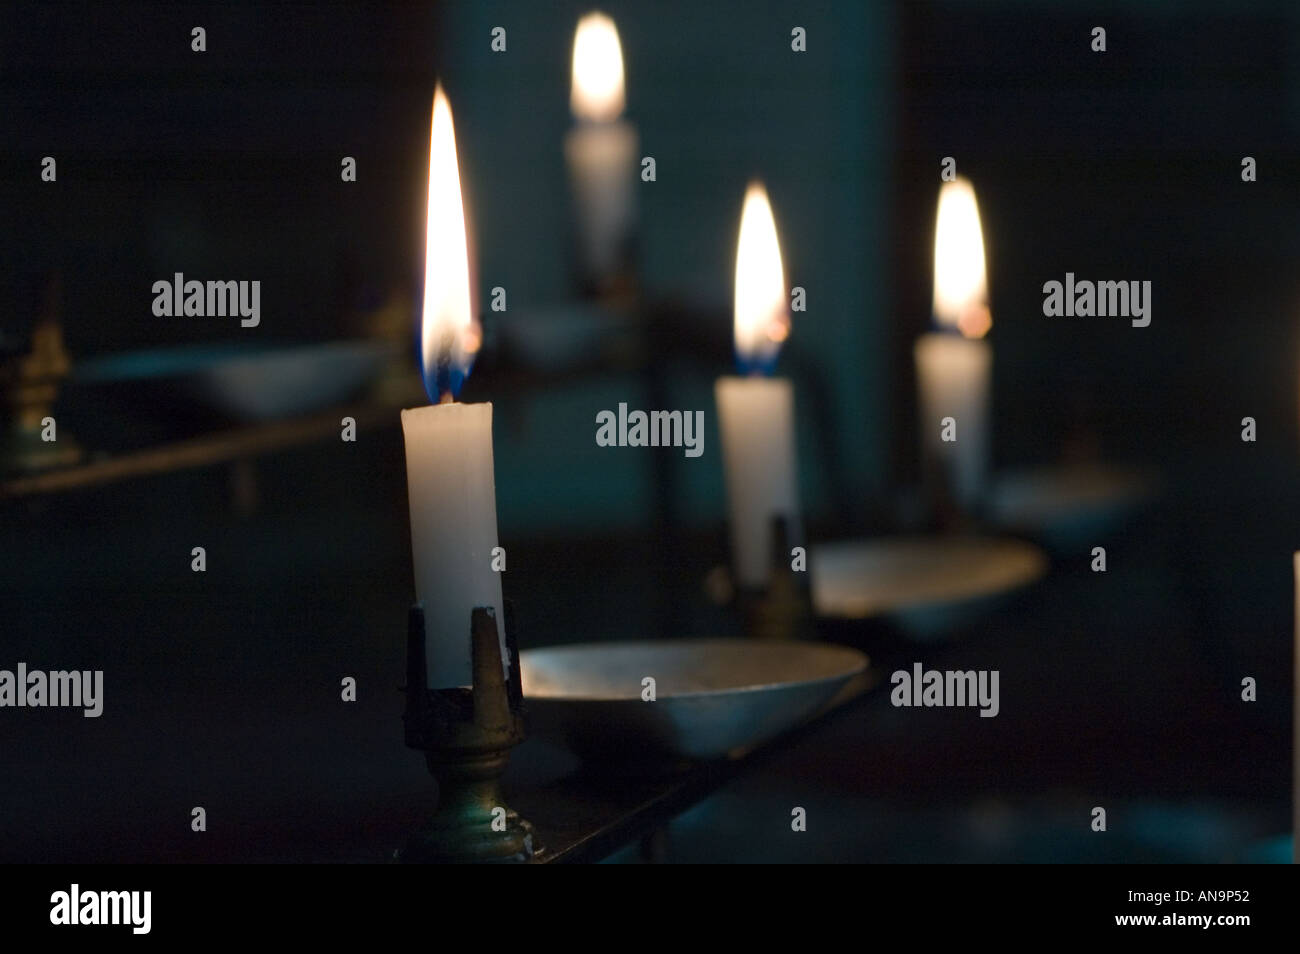 subdued lighting. Church Candles In An Old Beautifull Subdued Lighting Gives A Very Relaxed And Peacefull Feel To The Image \